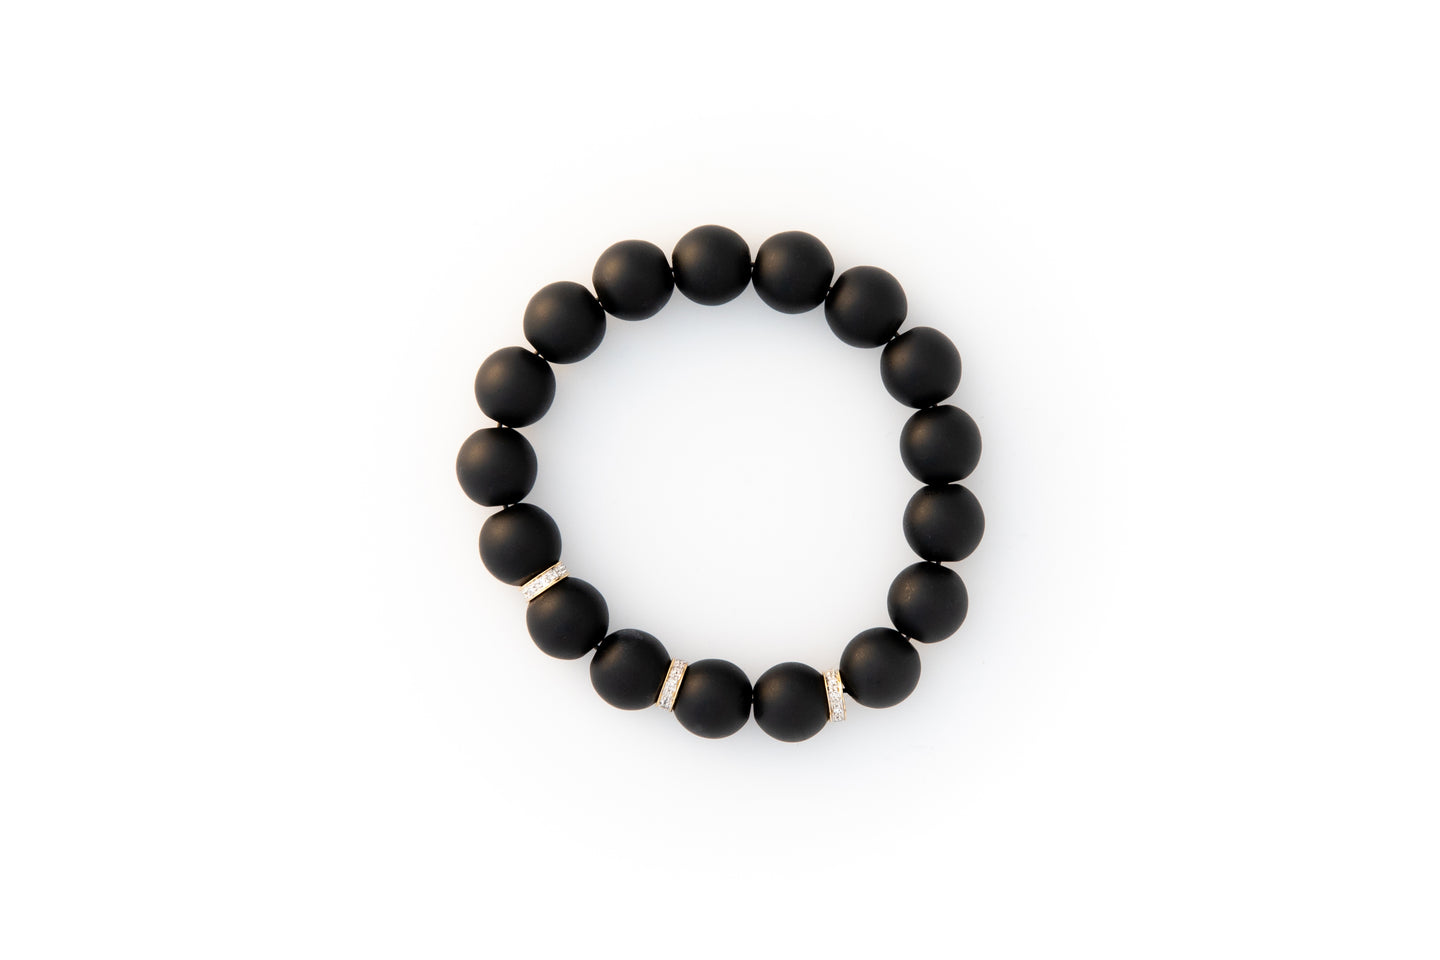 Black Onyx Beaded Bracelet With Three Pavé Diamond Spacer Beads Set in 14k Gold